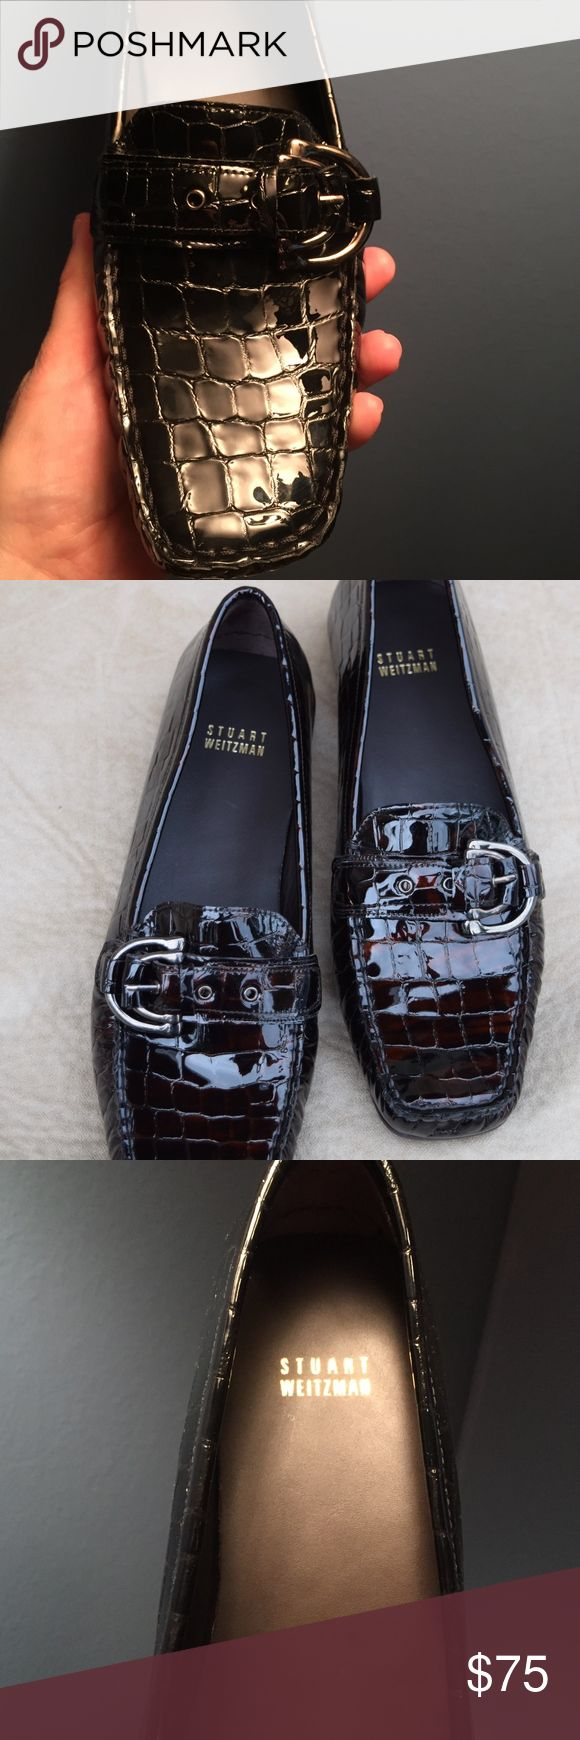 """New Stuart Weitzman Blk Patent Leather Loafers 10M Stuart Weitzman Patent Croc Embossed Patent Loafers Womans Size: 10-M  Featuring, Moc Toe Stitching,Single Stap with GunMetal colored buckle.   Insoles are fully lined in Brazilian Smooth Leather.   Bottom of soles are a Black, non marking rubber. Great pattern on Foot-Bed and heel for traction. These are from the Drivers edition, The End of the heel wraps up around 1 1/2"""" Vertically for that driving shoe feel.   Very European, Shoes ARE…"""